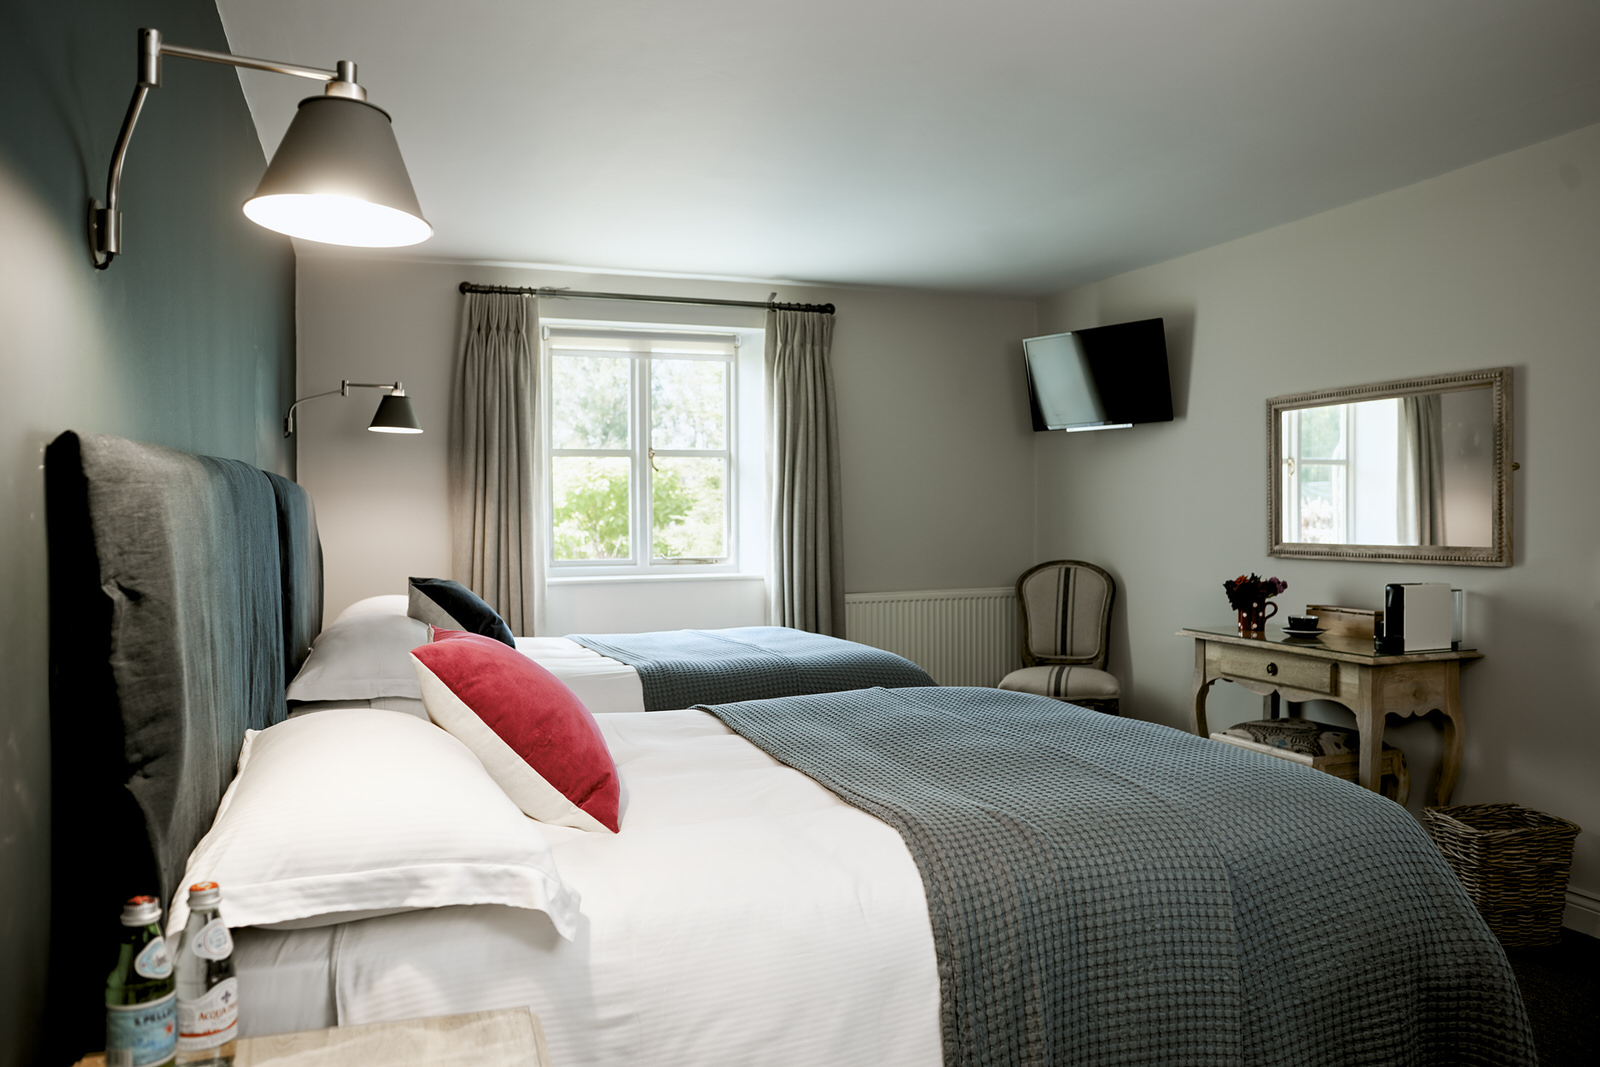 TWIN ROOM - Twin rooms have two double beds and an ensuite bathroom.TV, coffee machine, water and soaps are provided.